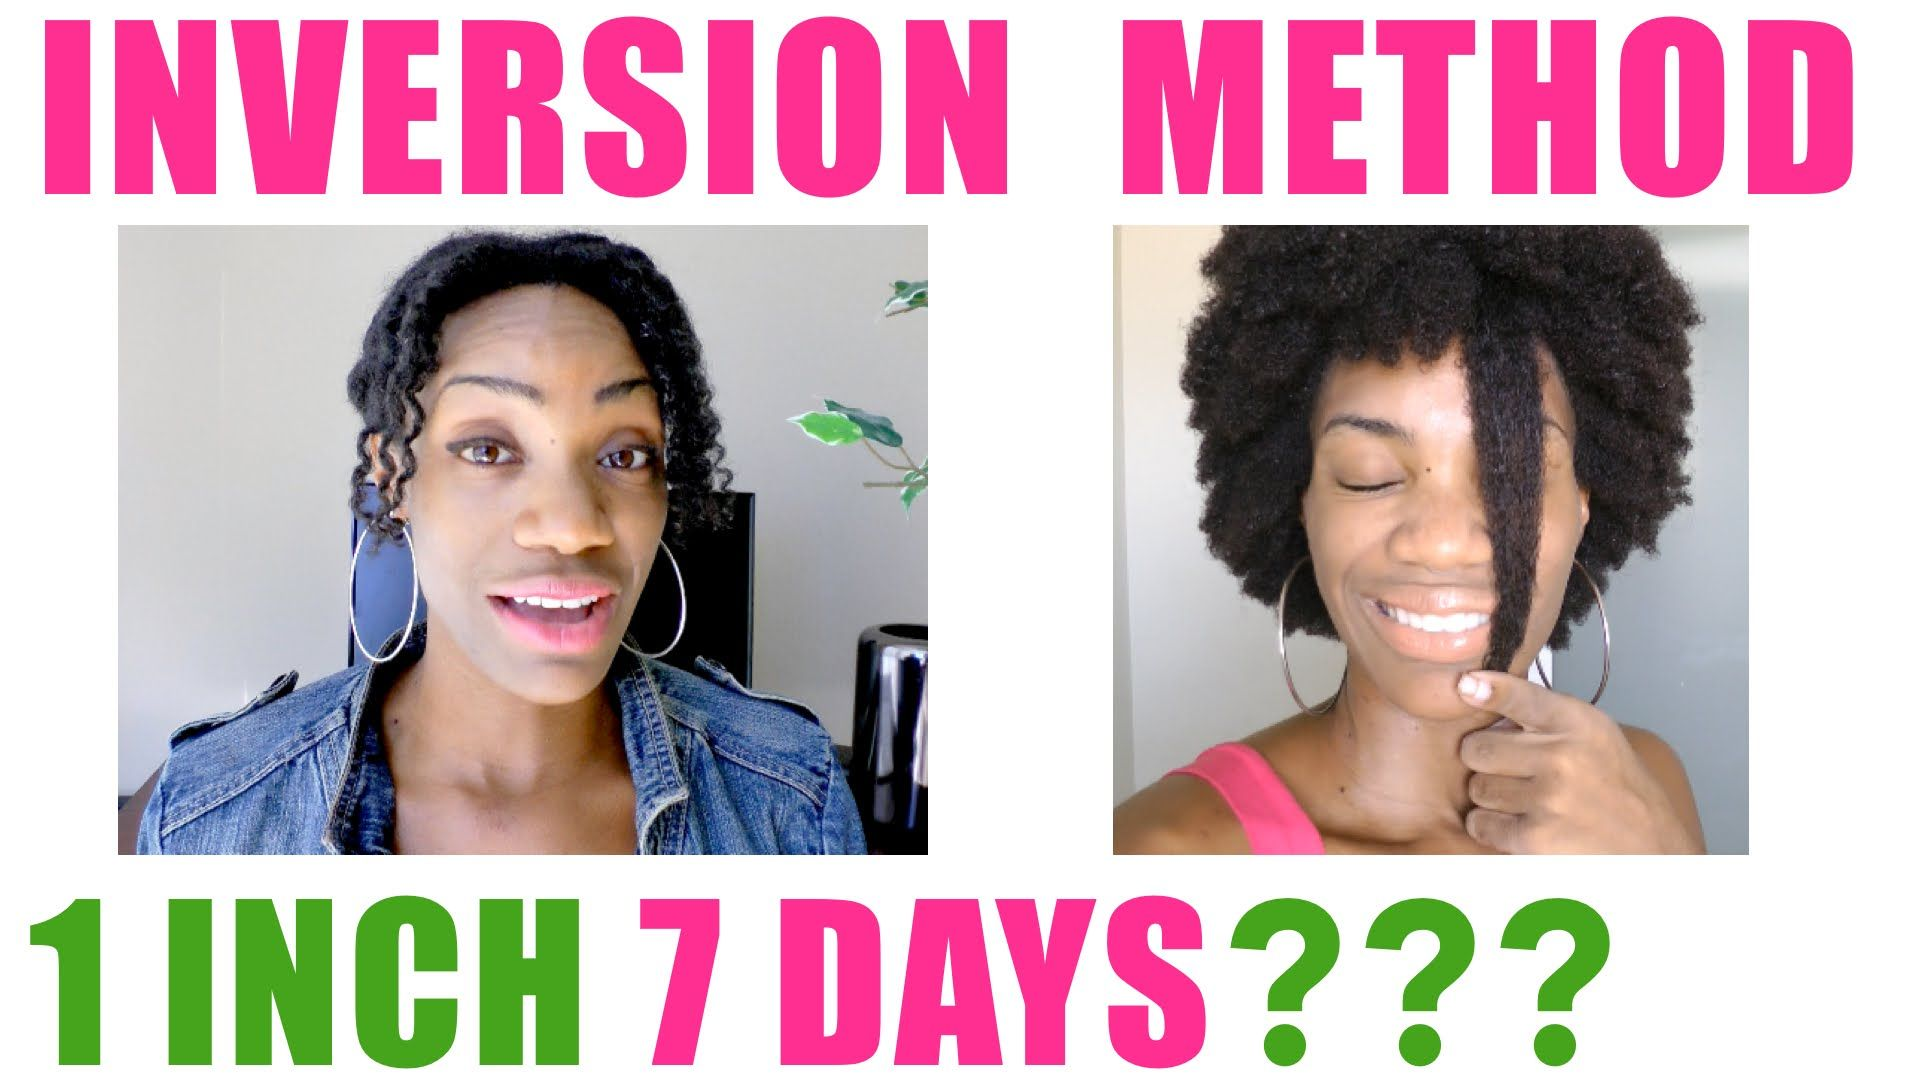 The truth about the inversion method for hair growth going